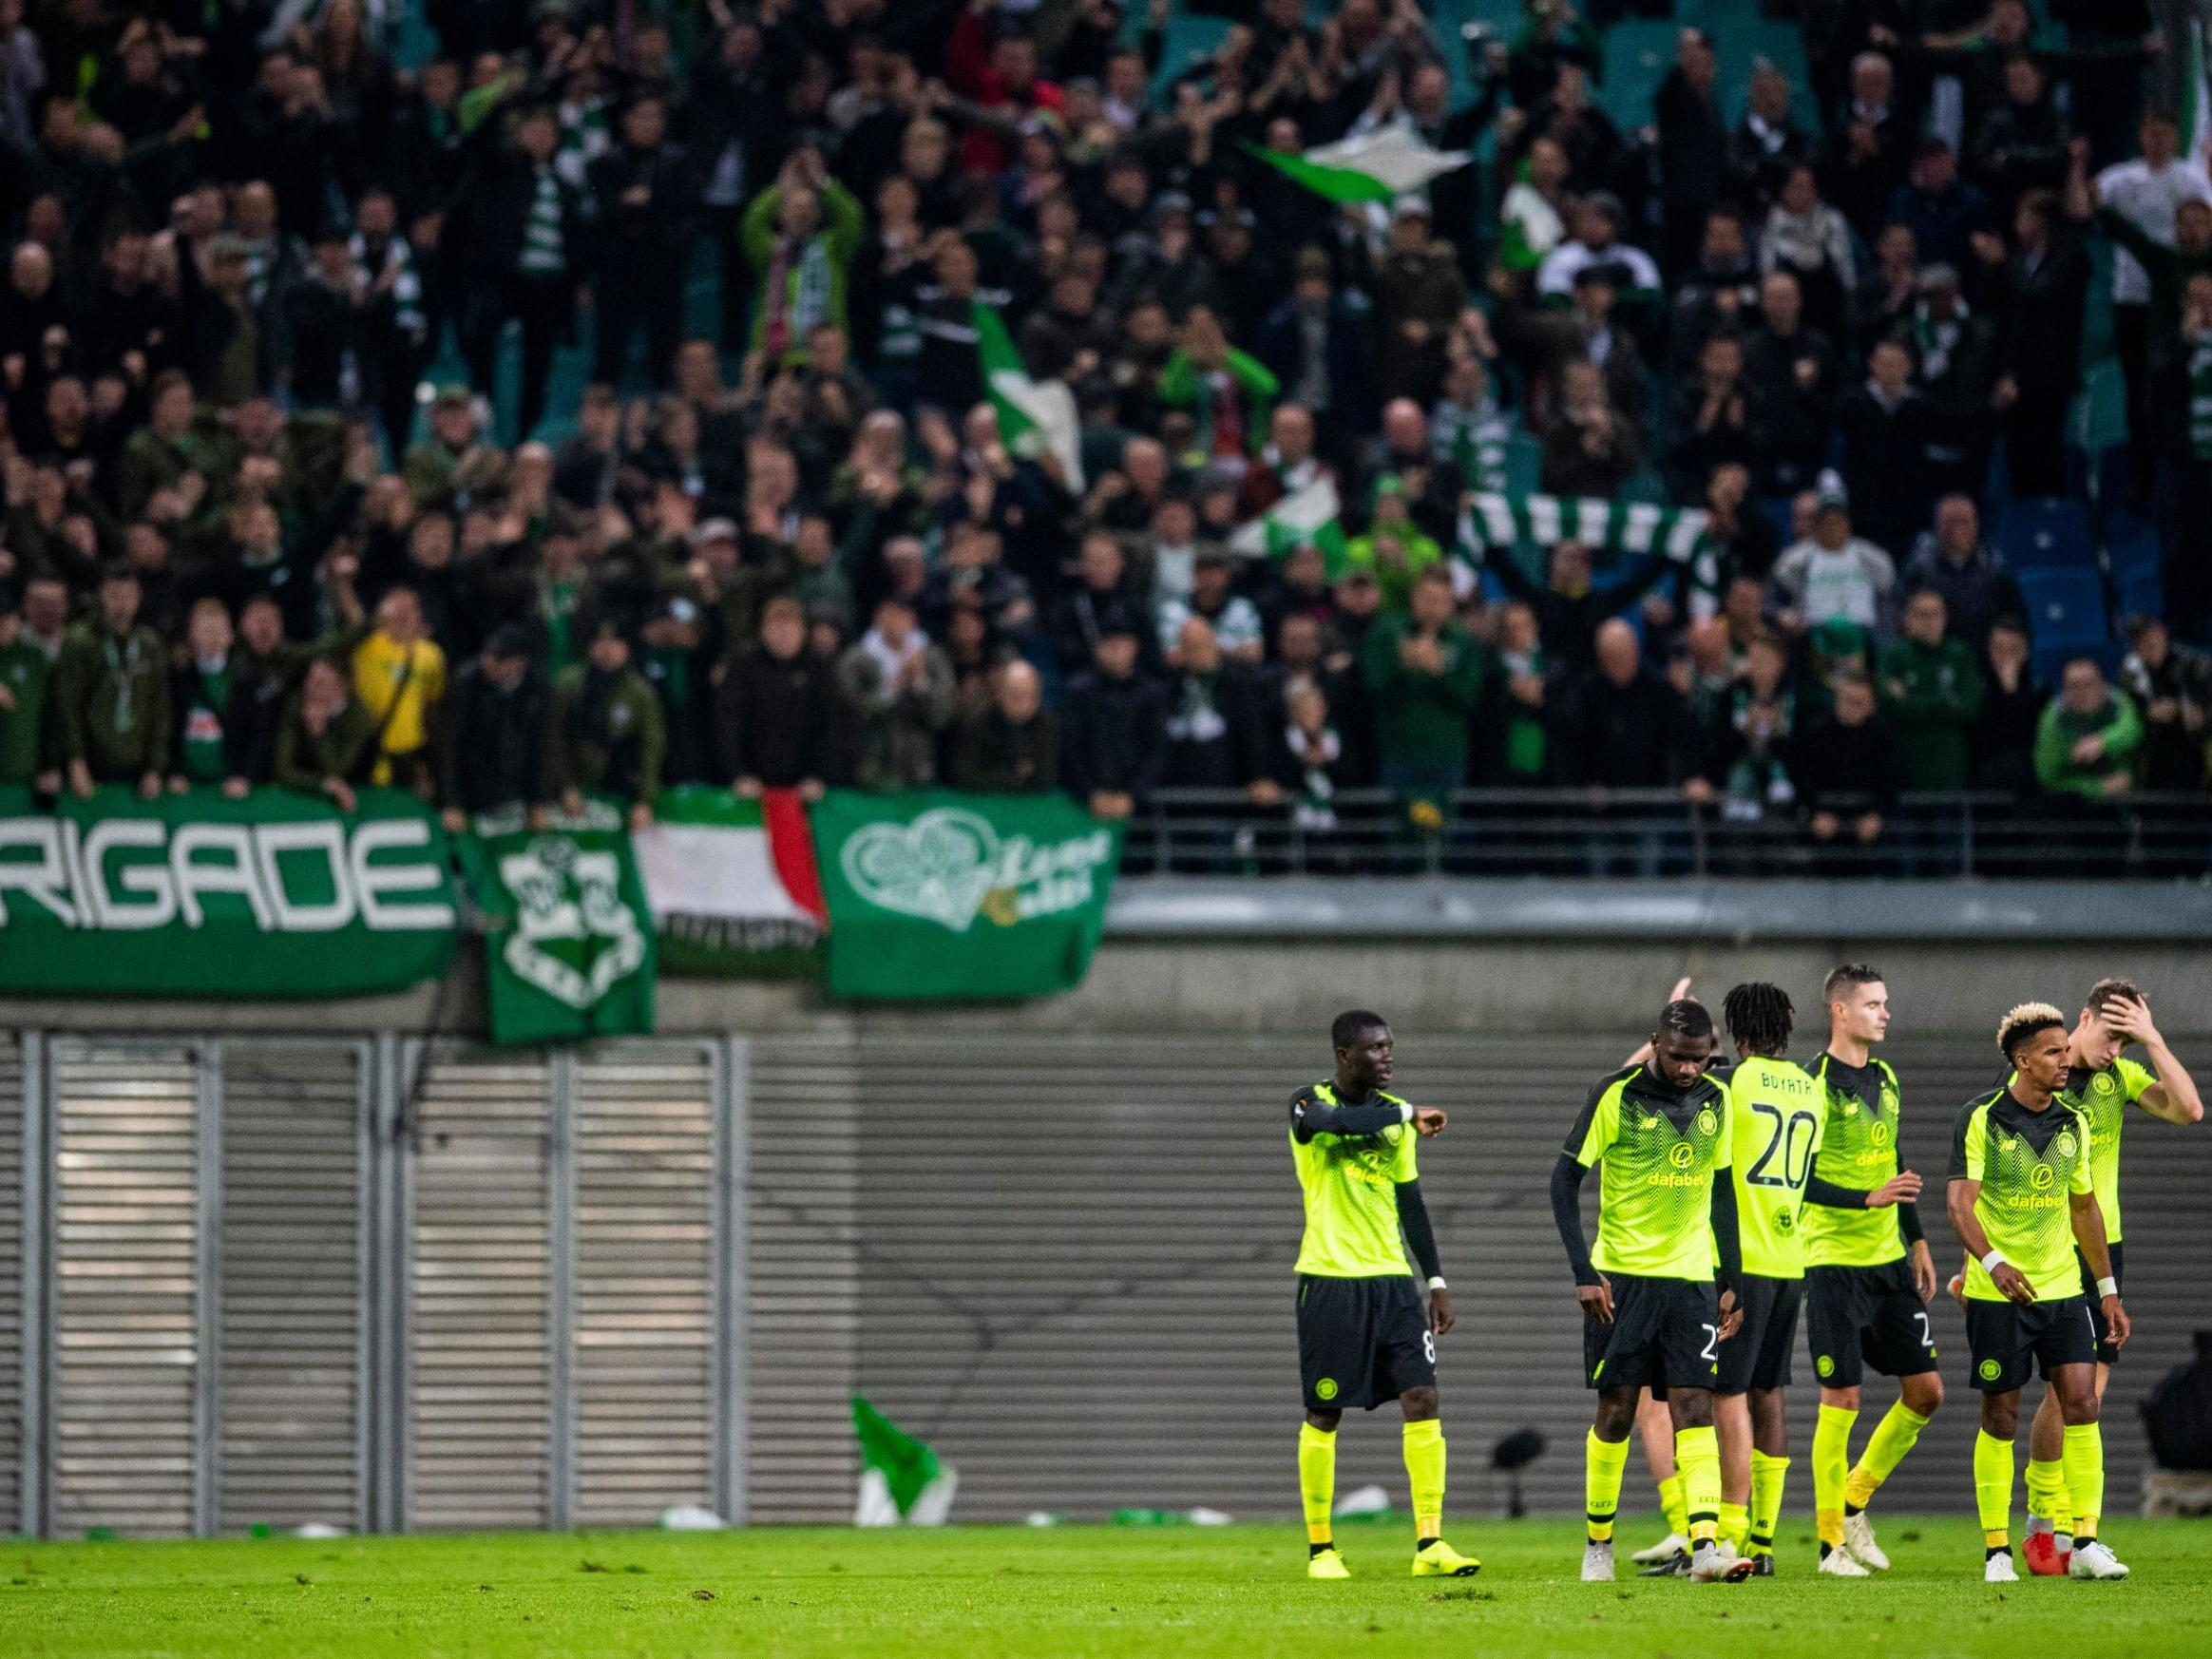 Celtic's Europa League hopes hit hard by RB Leipzig defeat